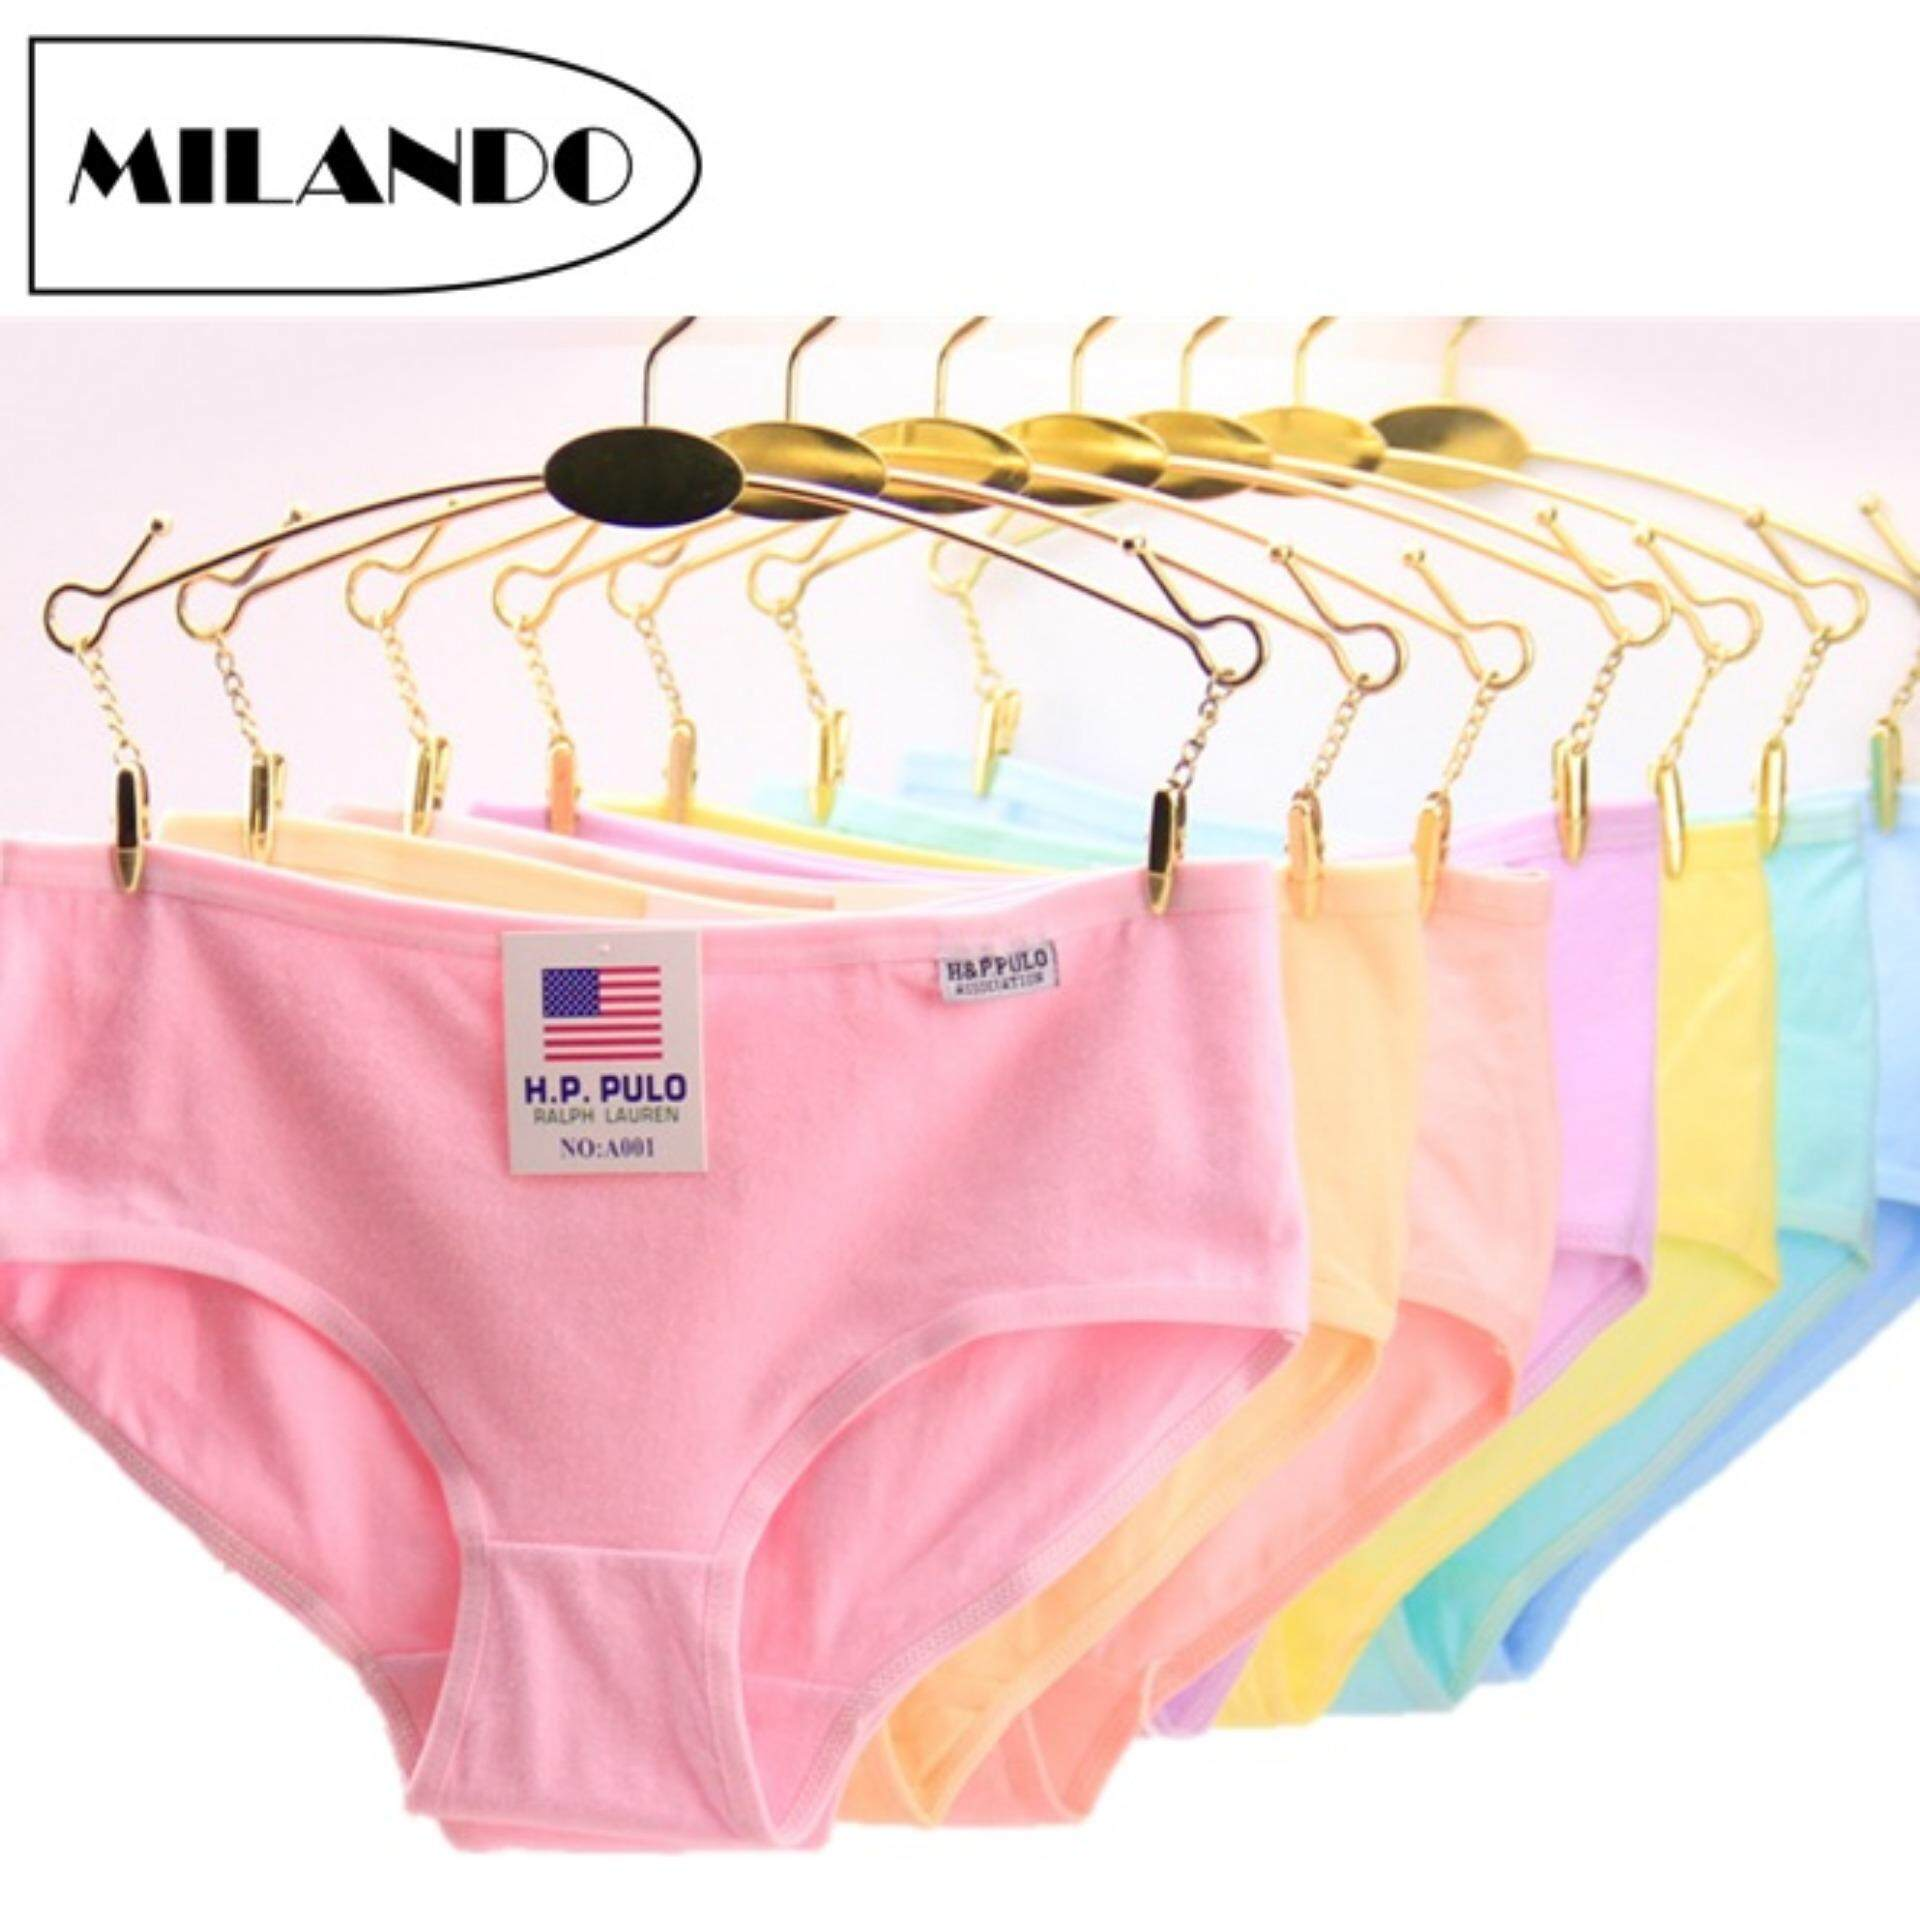 d6d653f12fd (6 Pieces) MILANDO Ladies Women Underwear Cotton Bikini Panties Seluar  Dalam Wanita (Type